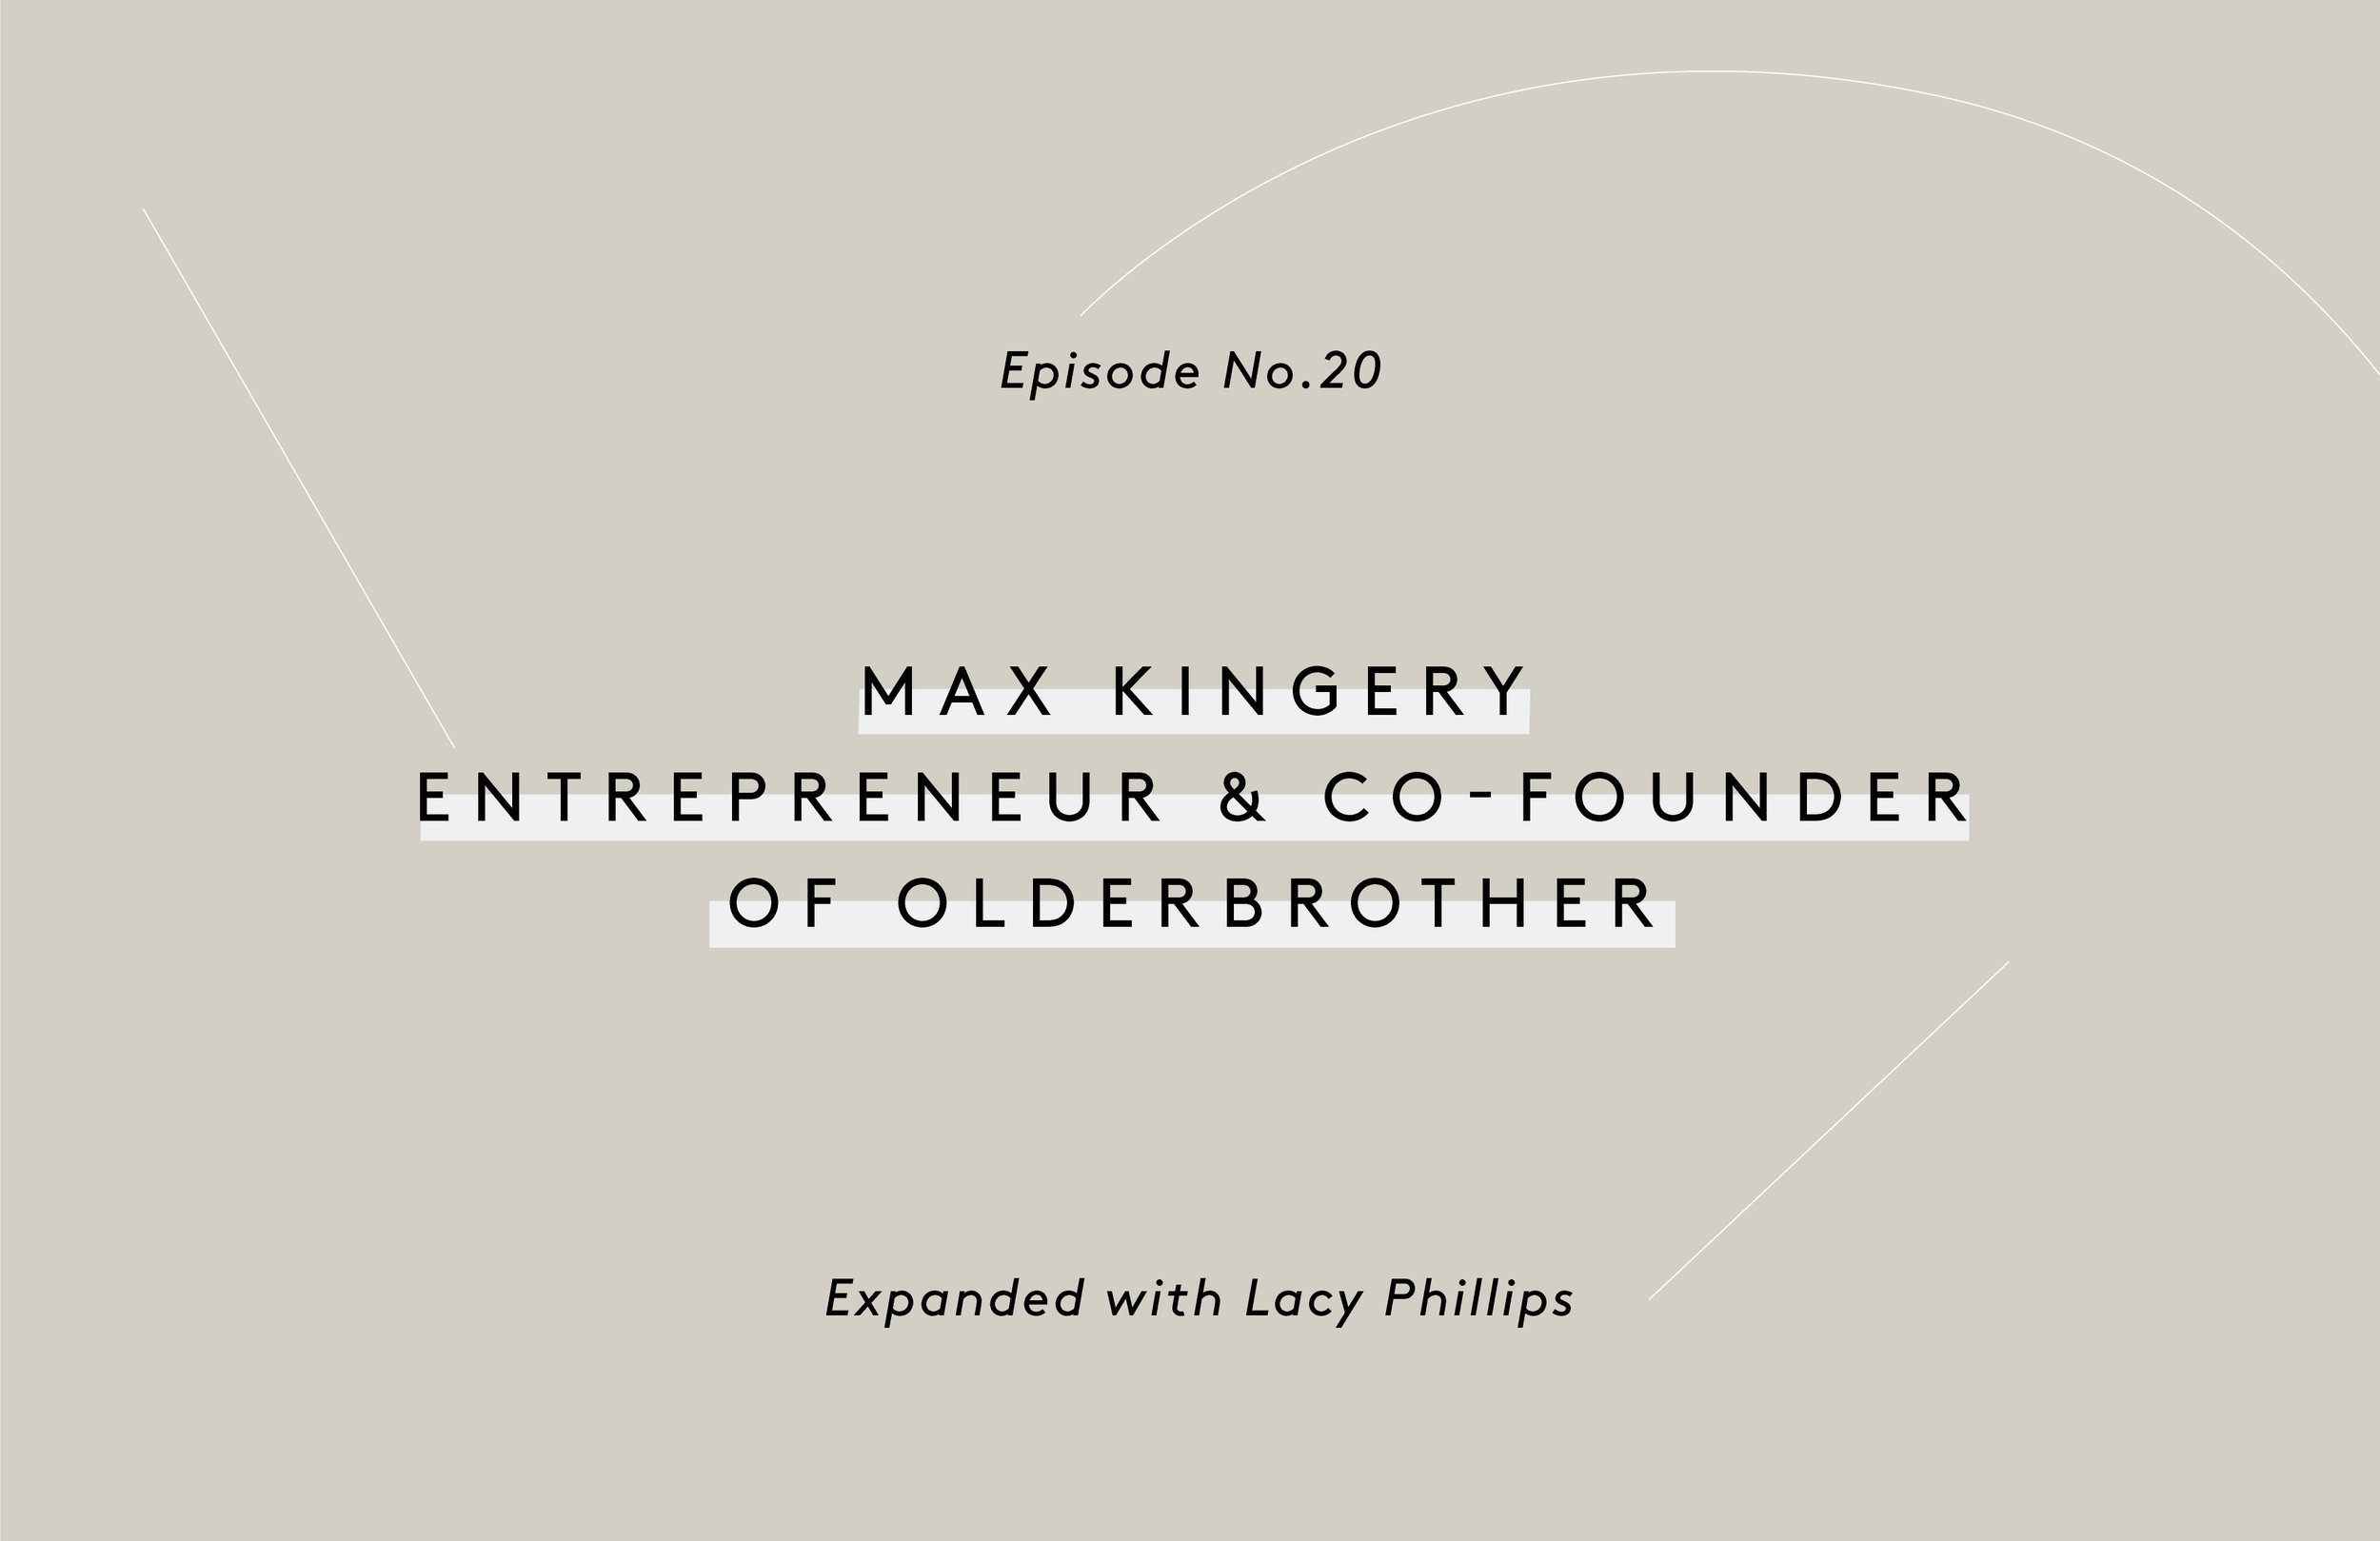 Listen to this episode of the podcast and many more. -